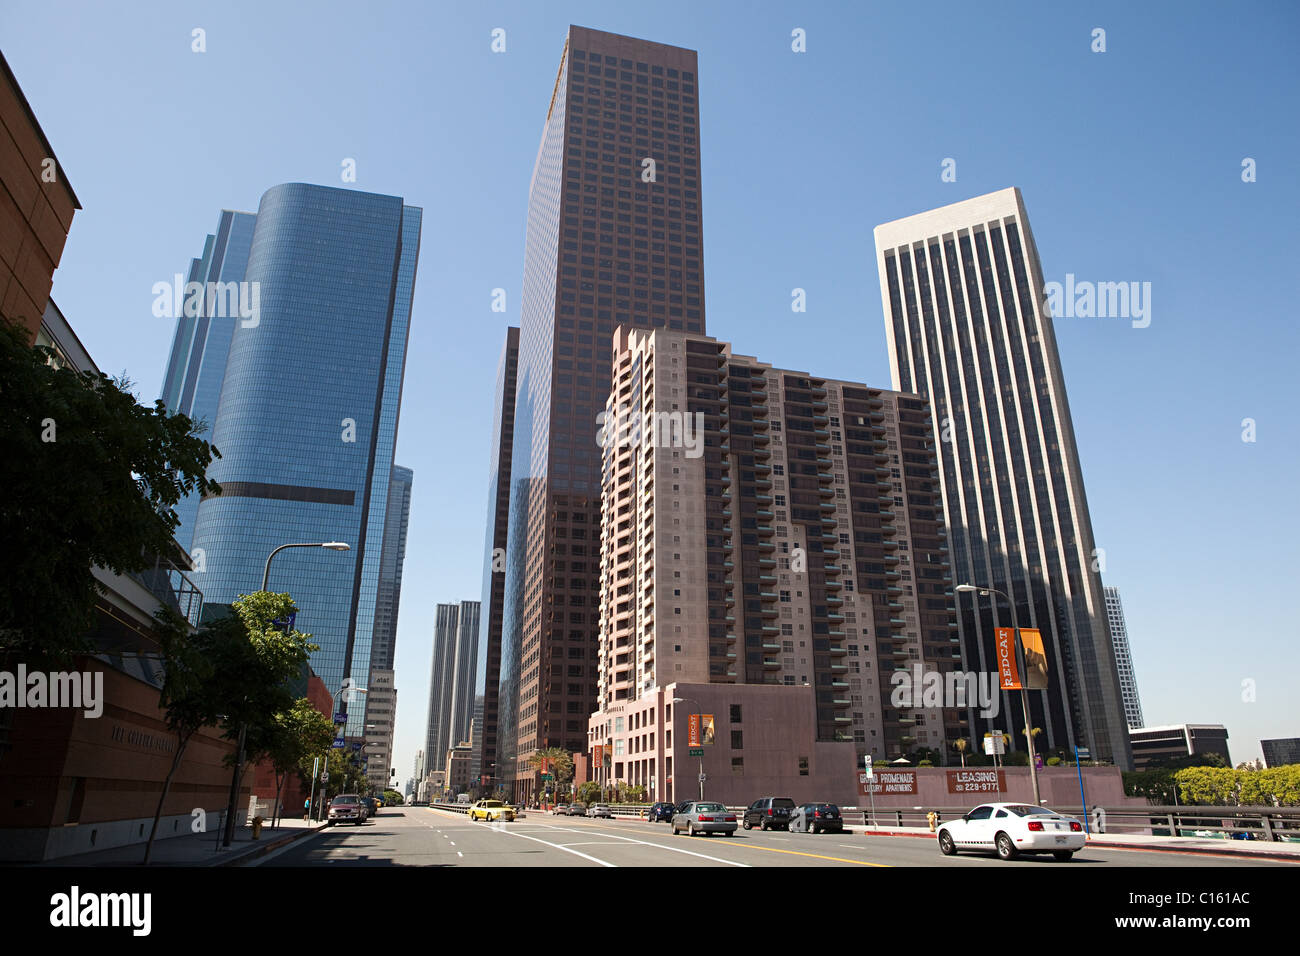 Museum of Contemporary Art, Downtown LA, Los Angeles County, California, USA - Stock Image